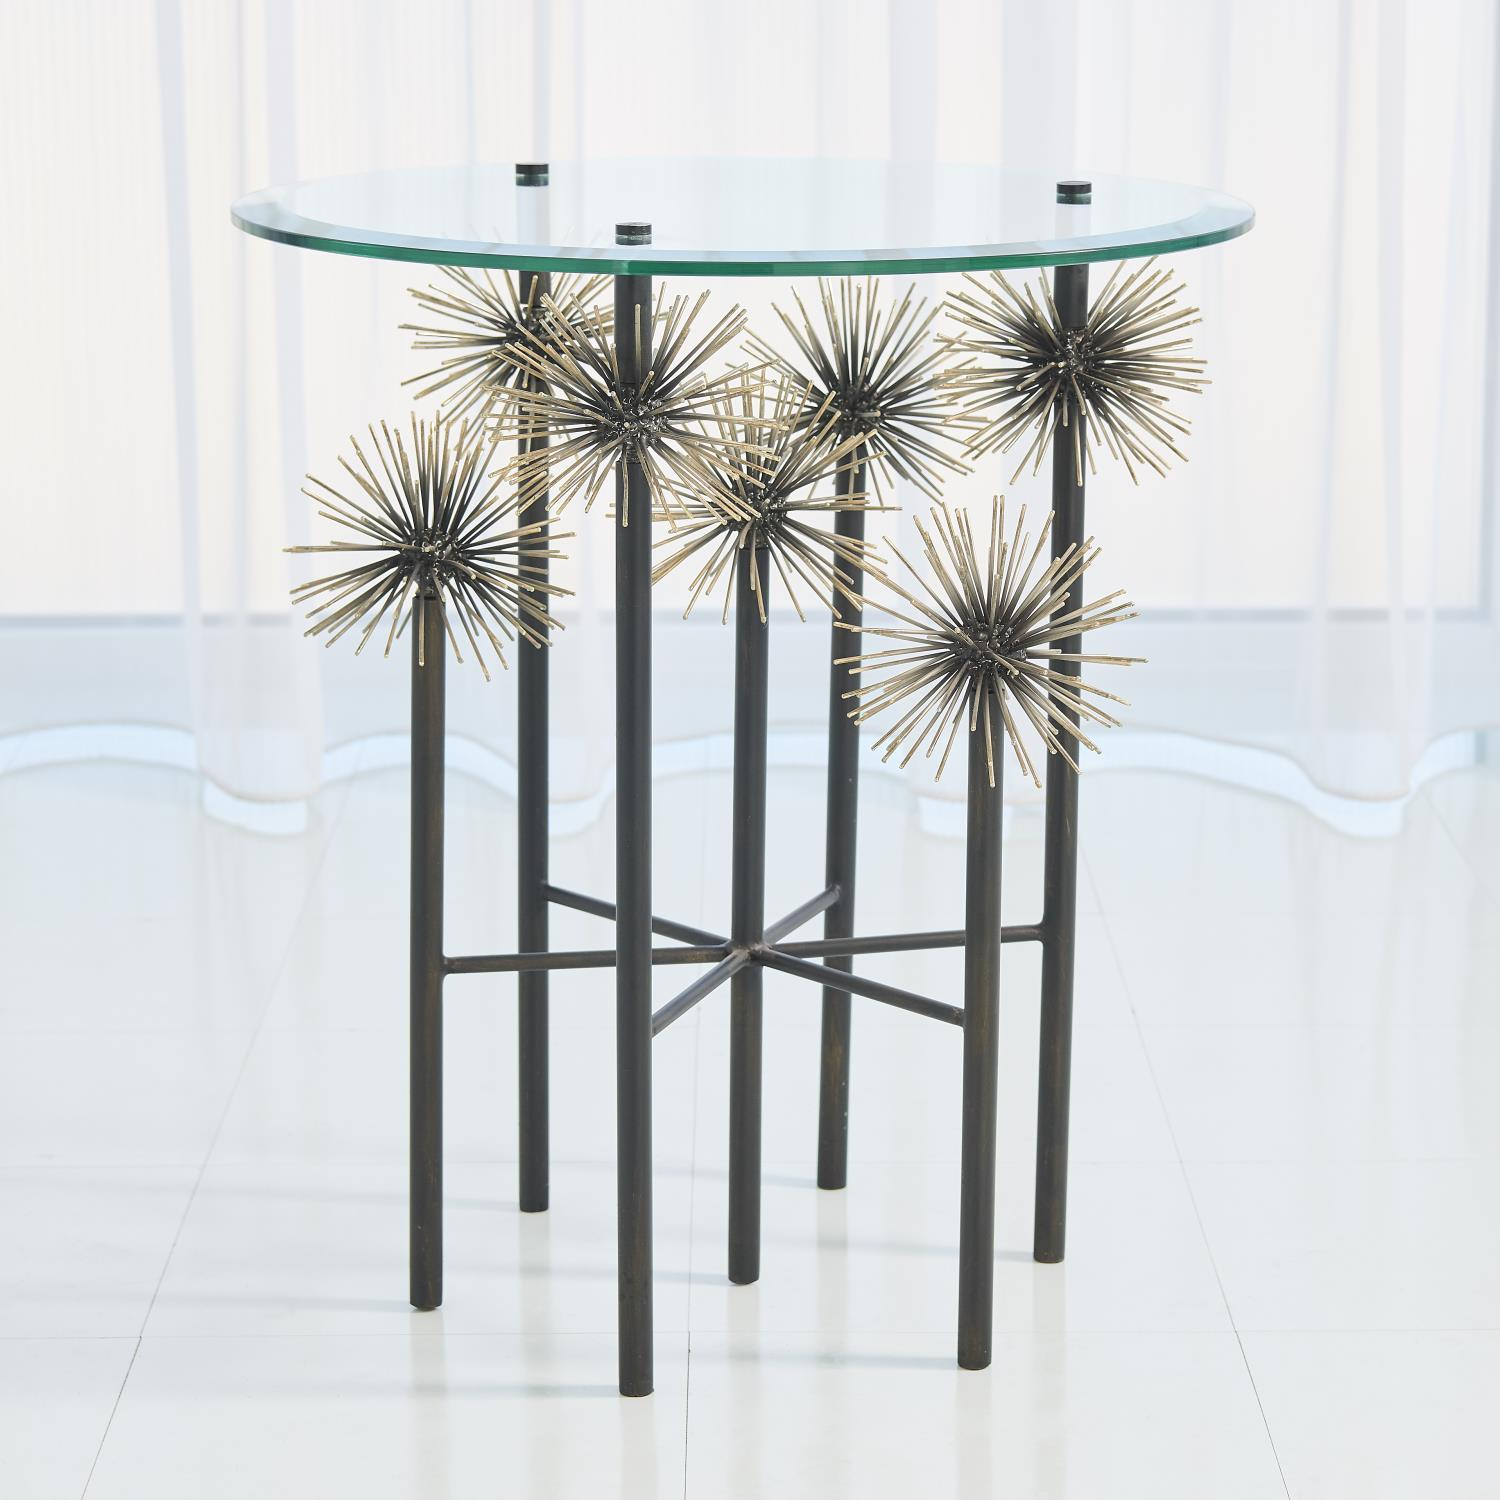 Sea Urchin End Table – $1,145.00